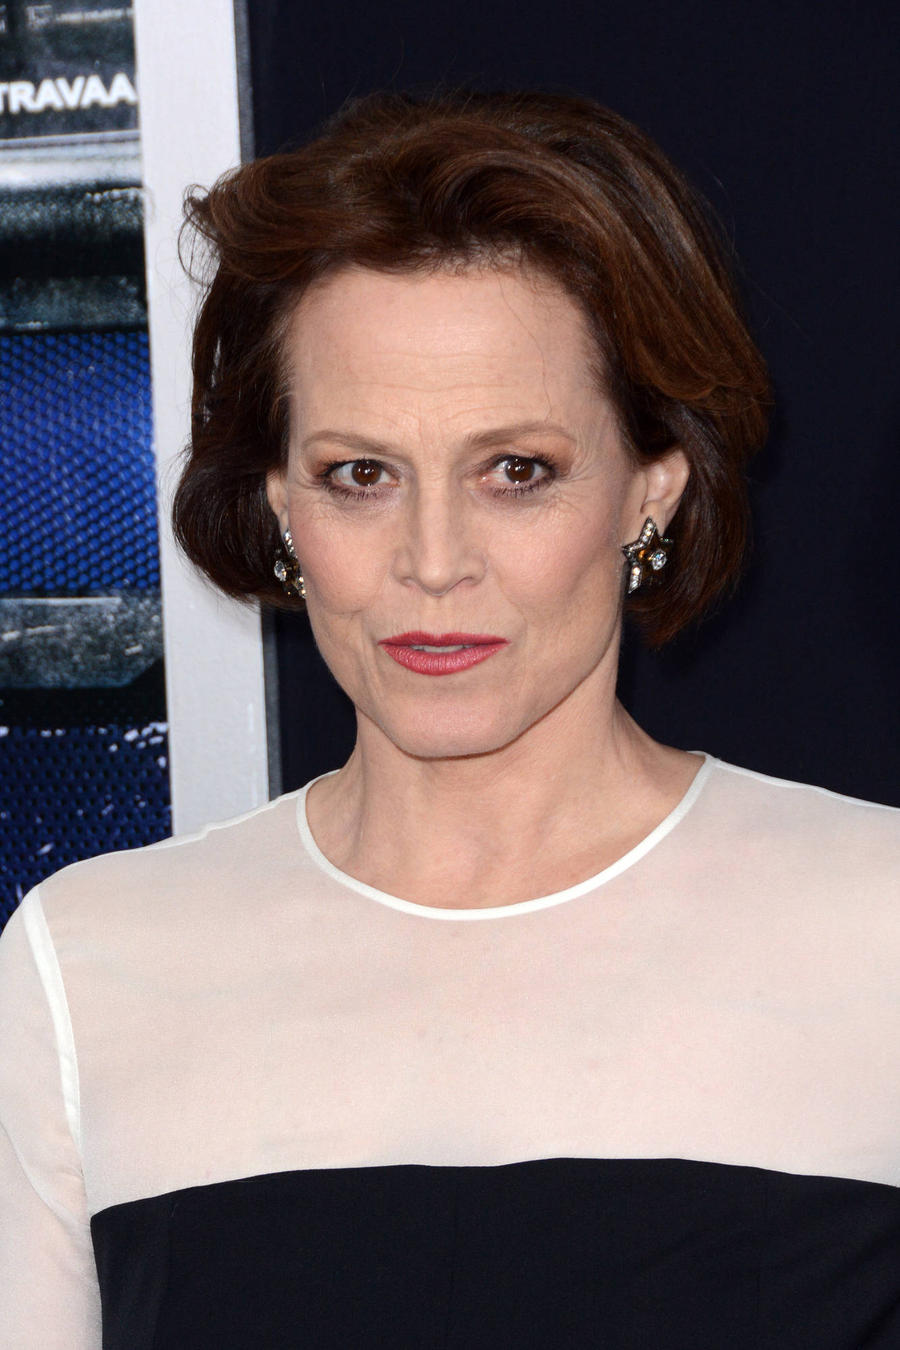 Sigourney Weaver Can't Wait To Get Back Into Space As Alien Hunter Ellen Ripley